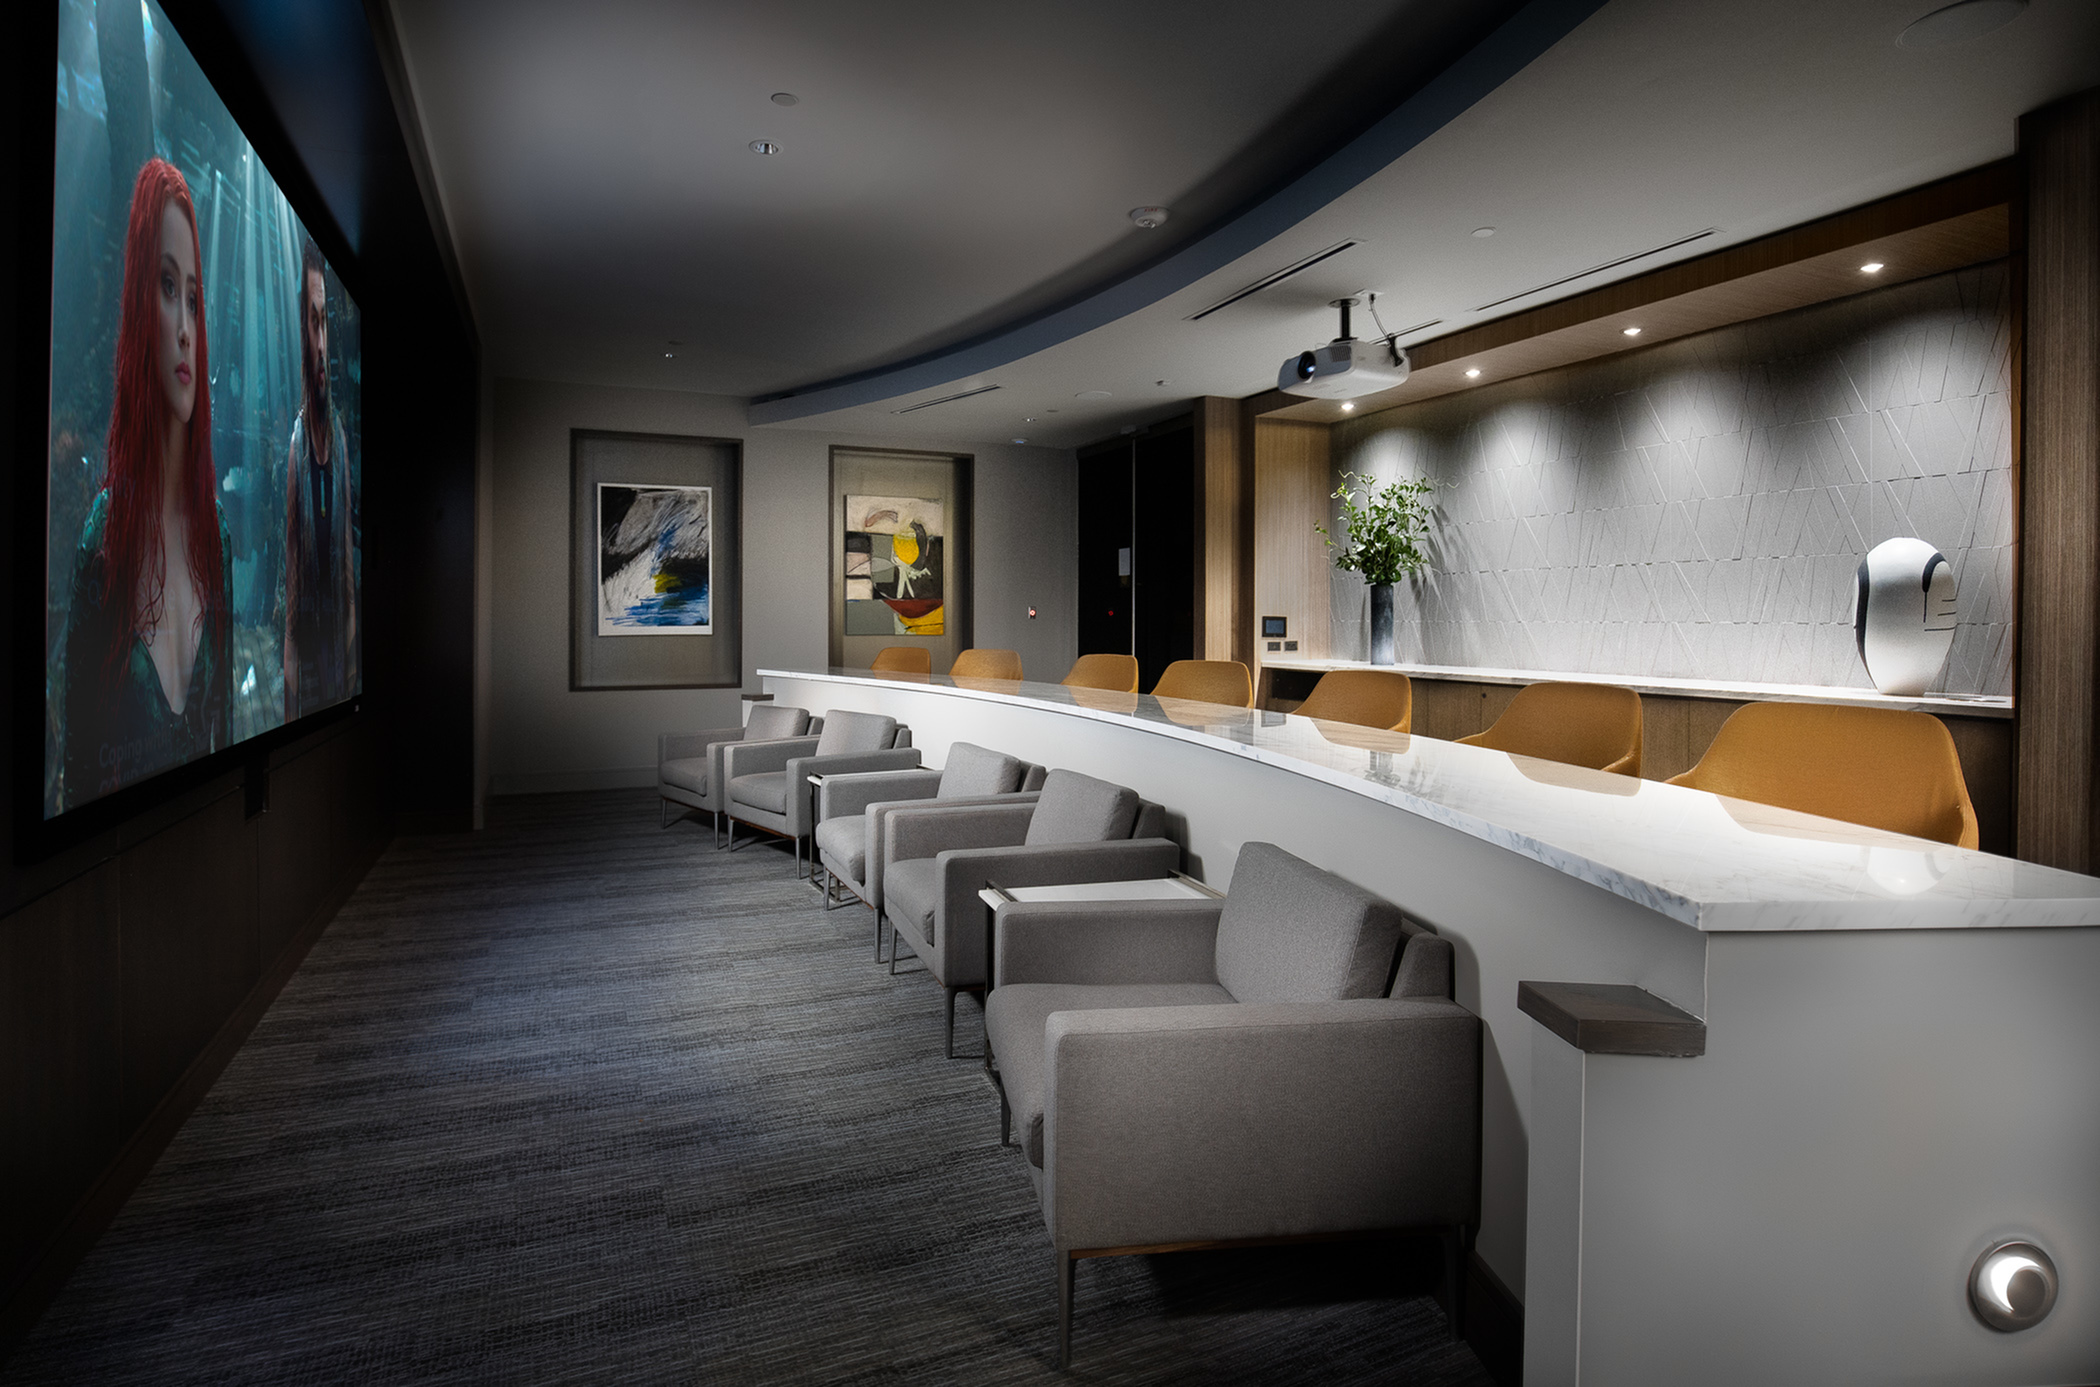 Private screening room featuring theater-style seating at Hanover The LINC Brookhaven